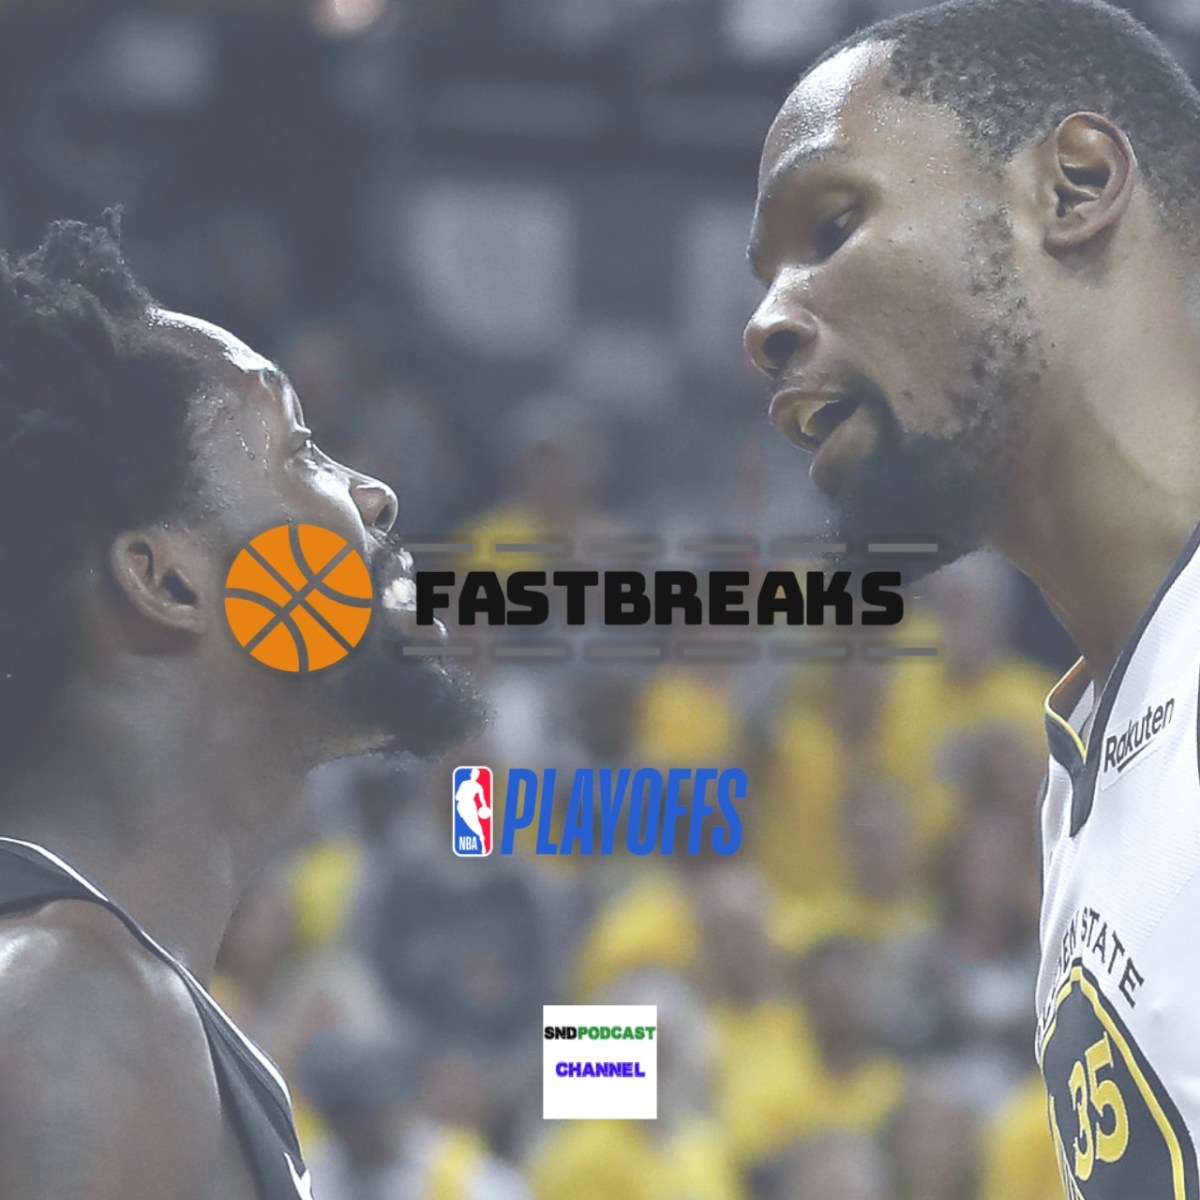 Fastbreaks Ep. 19 Playoff Mode Activated